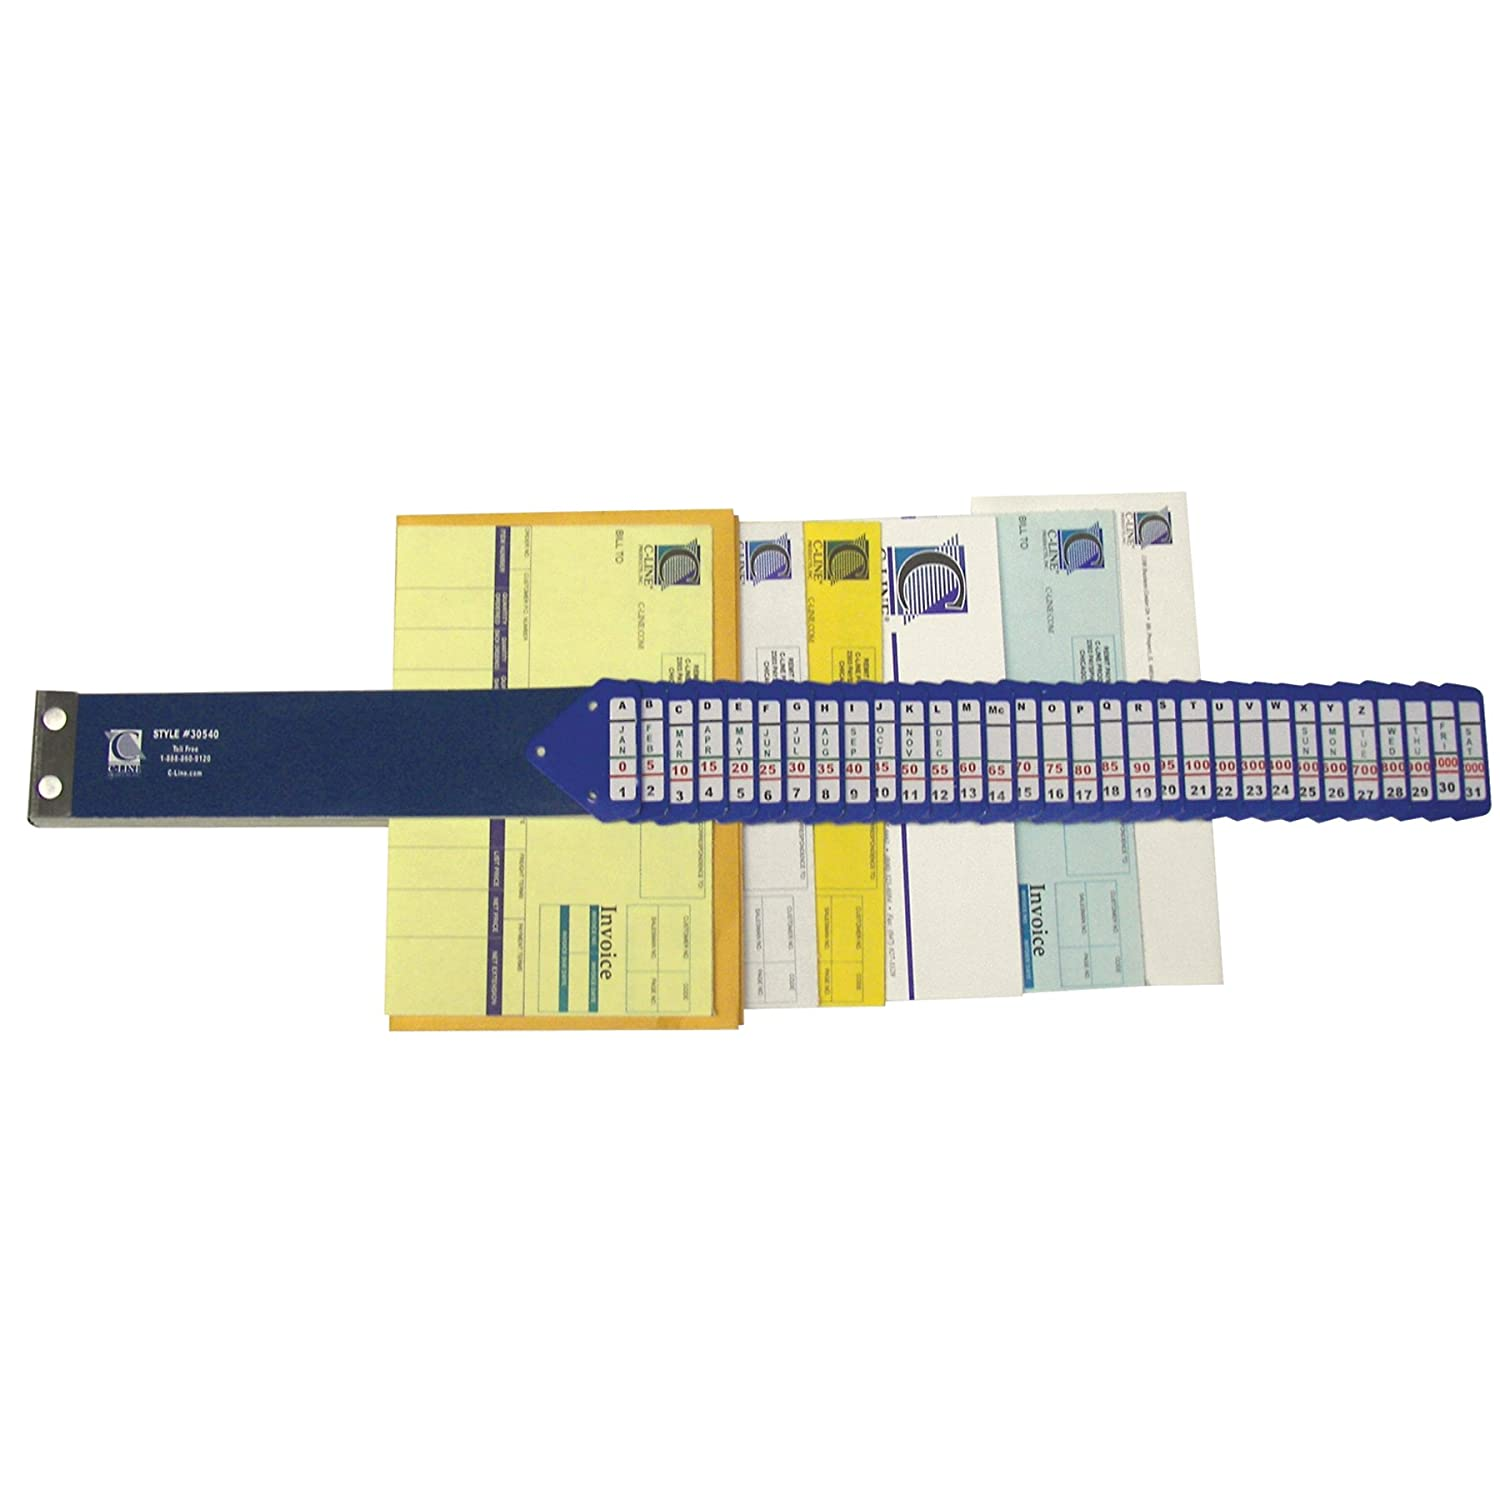 C-Line Heavy Duty Document Sorter with 5 Indexing Systems on 31 Letter-Size Dividers C-Line Products Inc. 30532